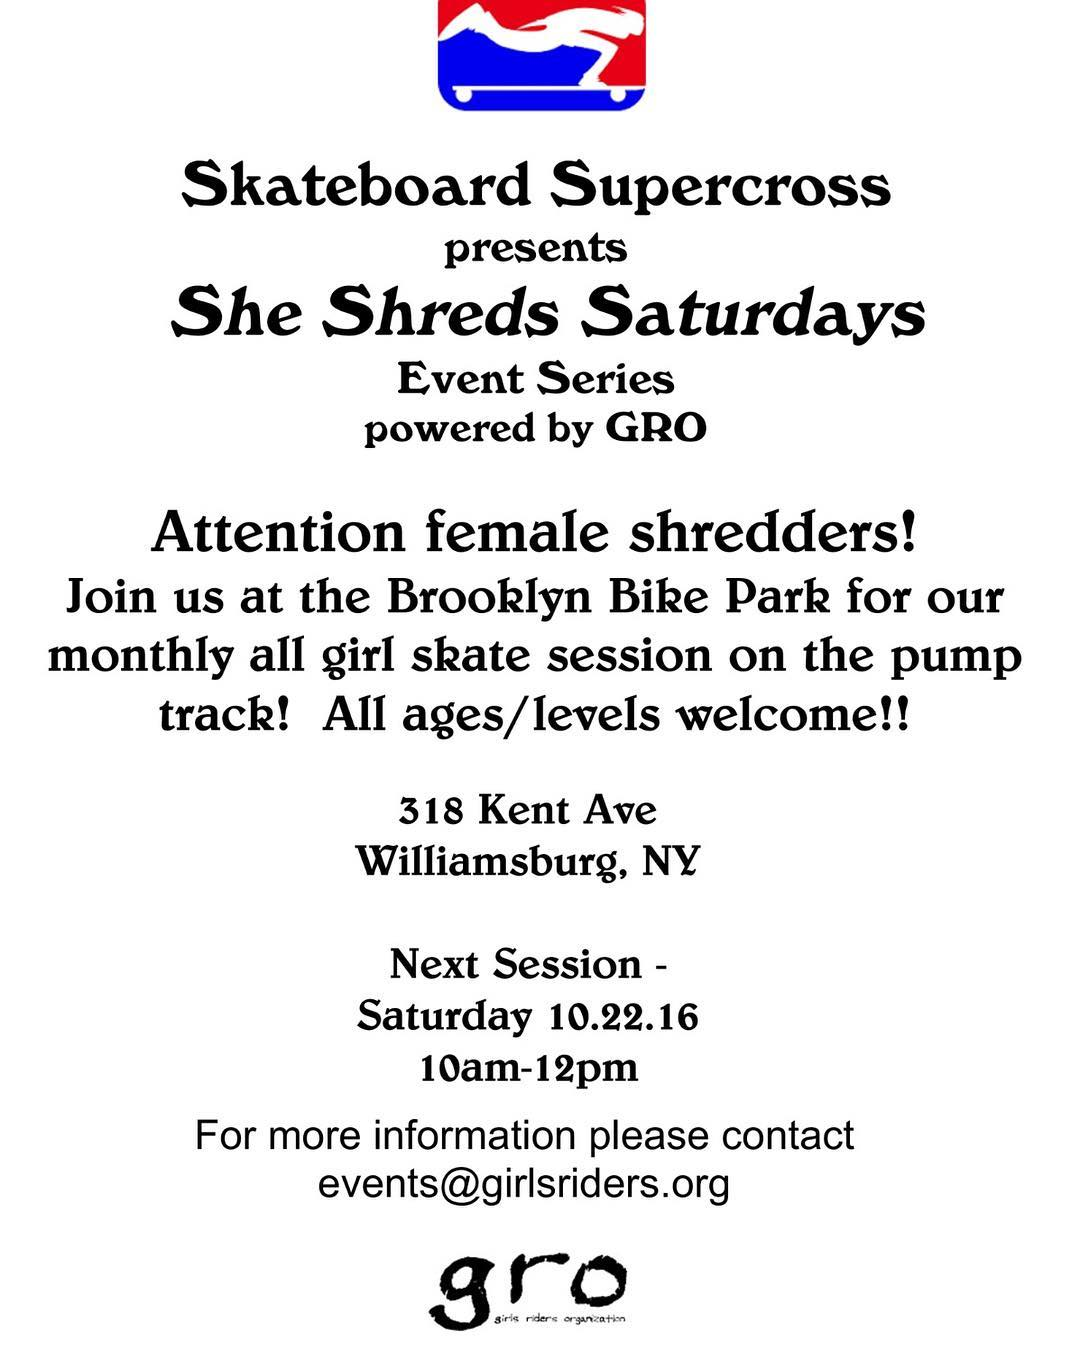 Save the date!! October 22nd is the next She Shreds Saturday! Can't wait to see you all there